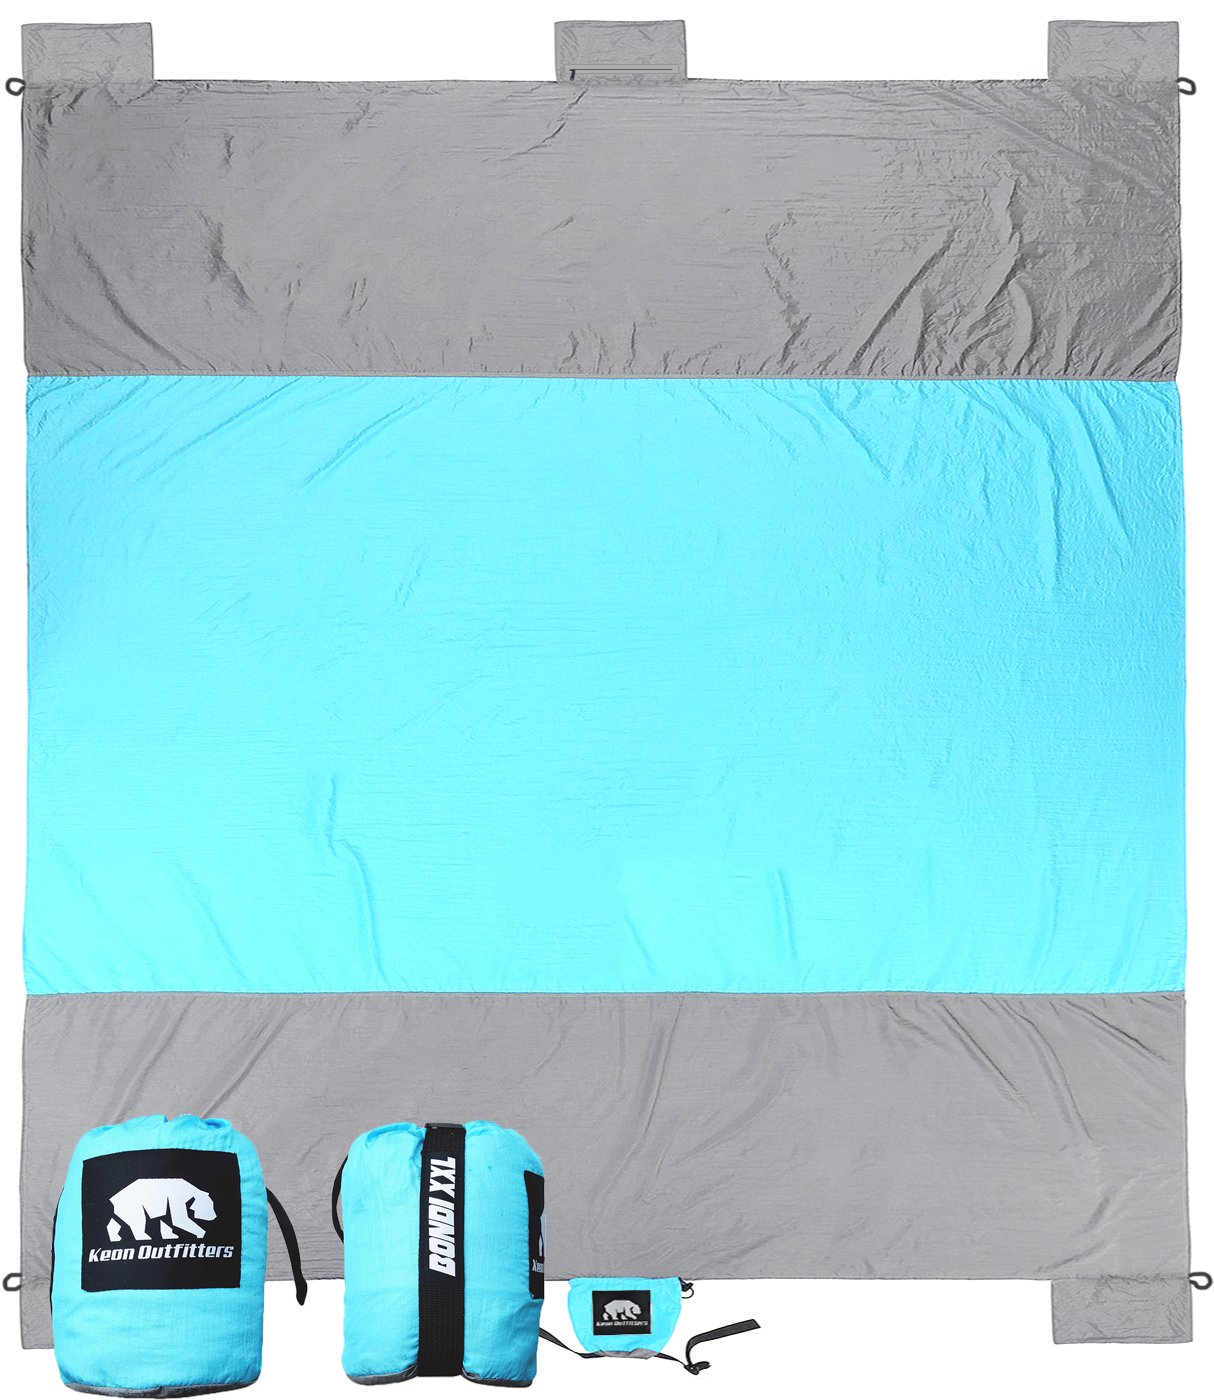 ALL-NEW Bondi Oversized Outdoor Beach Blanket / Picnic Blanket - 7' X 9' 20% Bigger Than Other Blankets. Made From Strong Parachute Nylon. Includes Built In Sand Anchors & Hidden Zipper Pockets